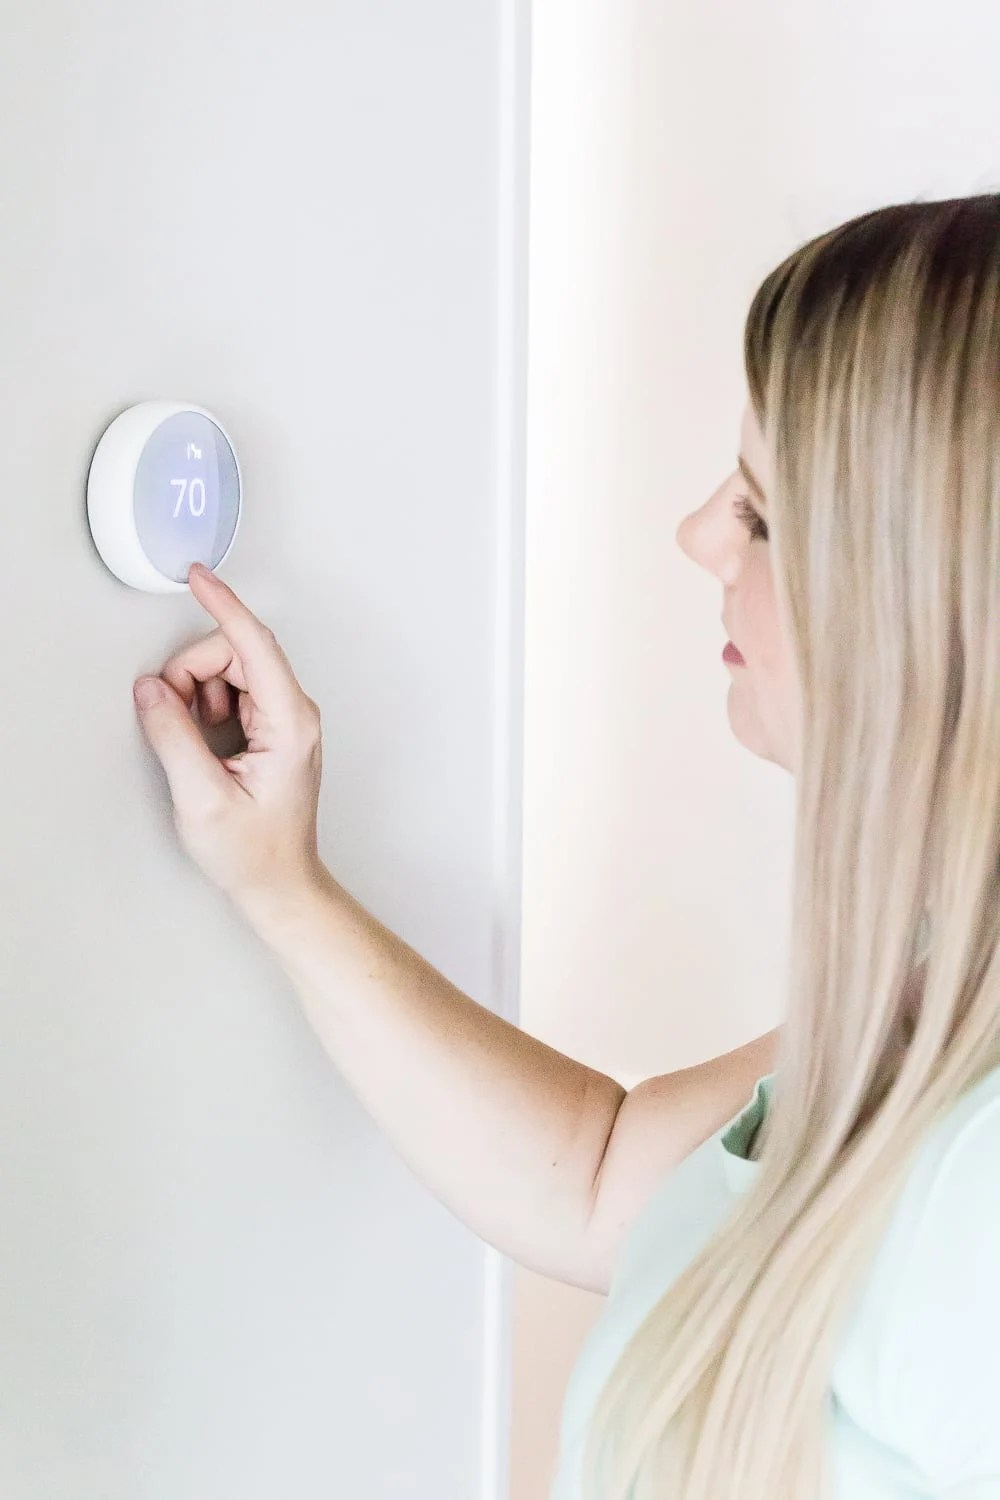 How to install a Nest thermostat by yourself to set up a smart home